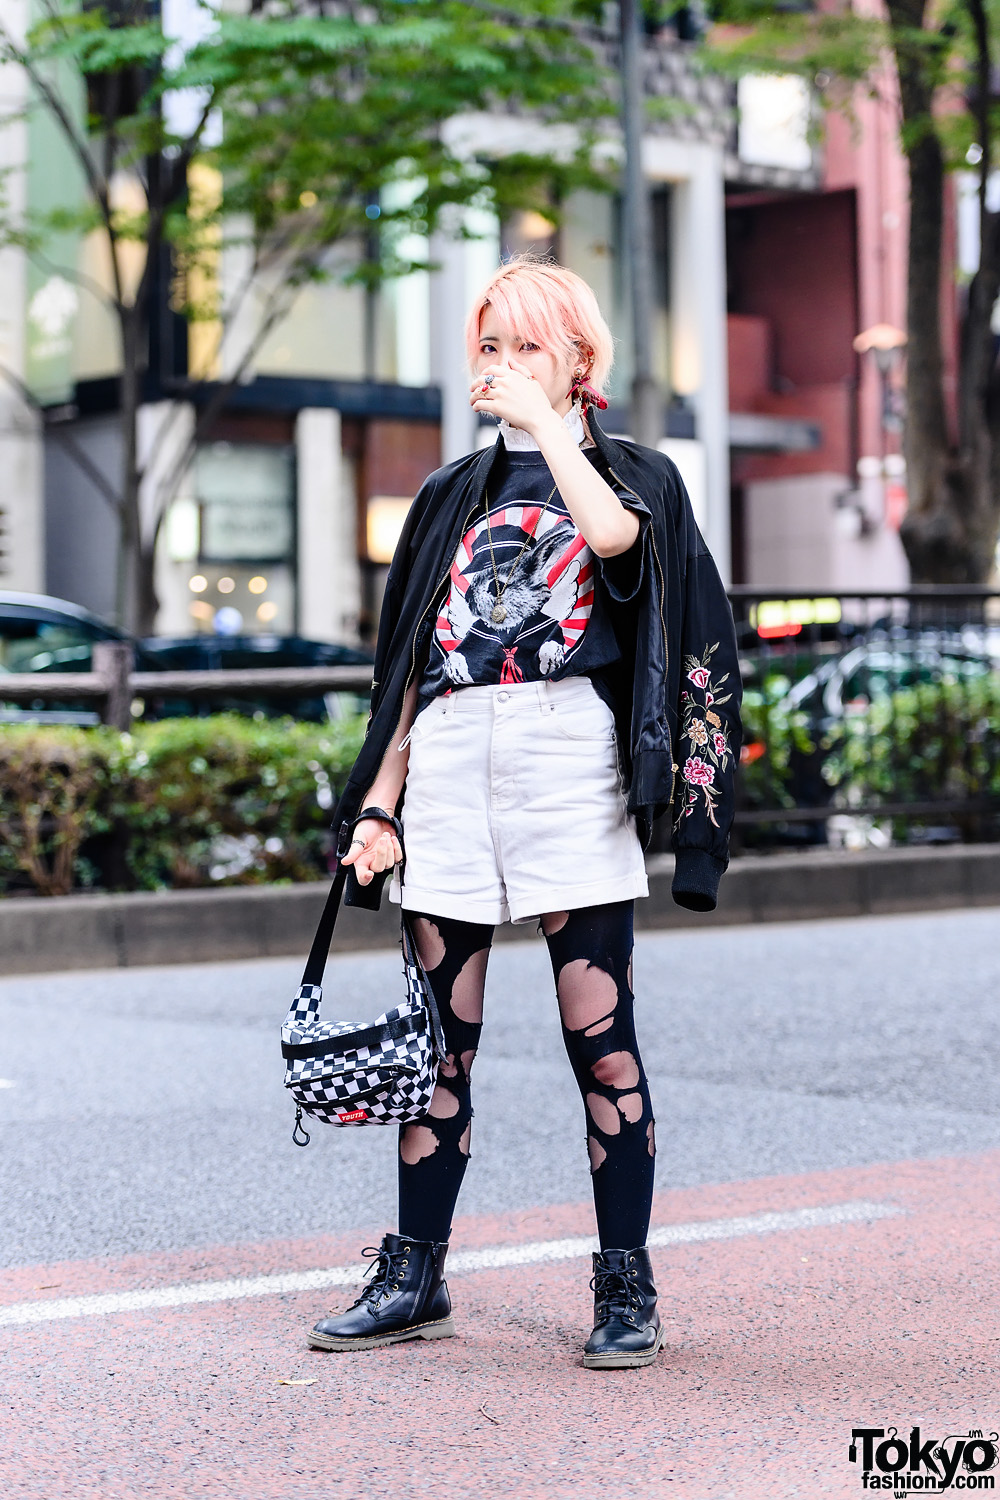 Monochrome Streetwear Style w/ Peach Hair, Flask Necklace, Bomber Jacket, Rabbit Shirt, Shorts Over Ripped Tights & Leather Boots